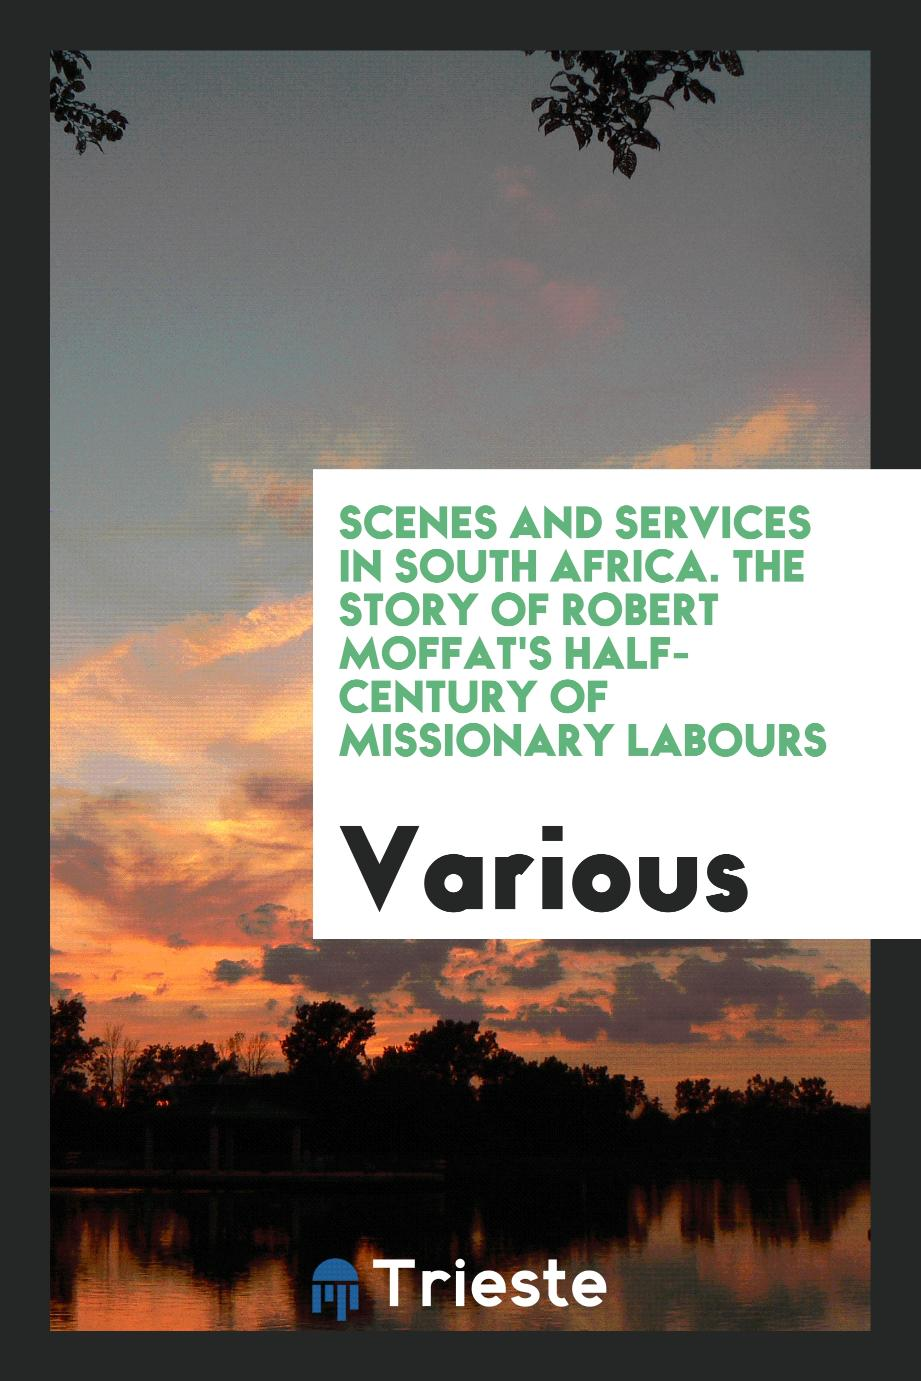 Scenes and services in South Africa. The story of Robert Moffat's half-century of missionary labours